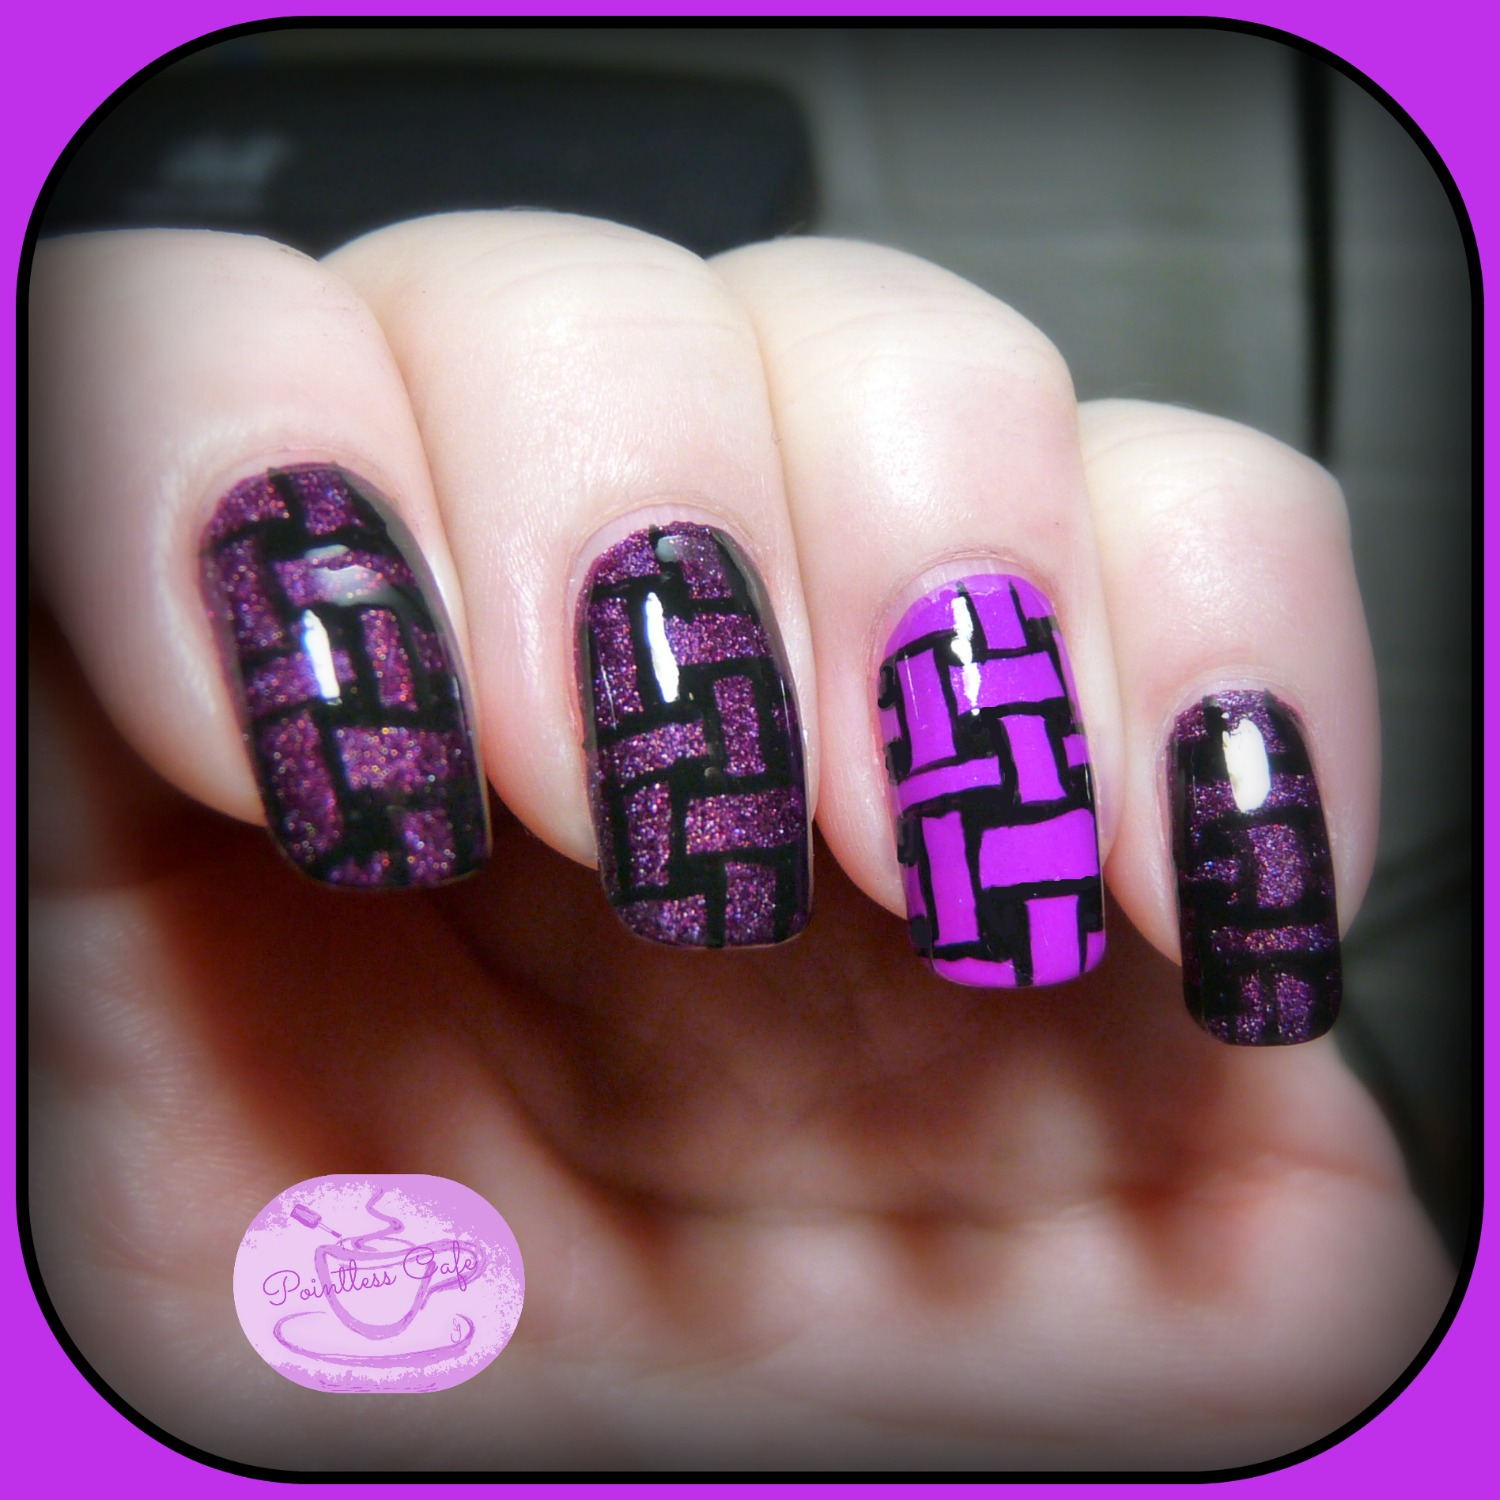 13 Days of January Nail Art Challenge: Follow a Tutorial | Pointless ...